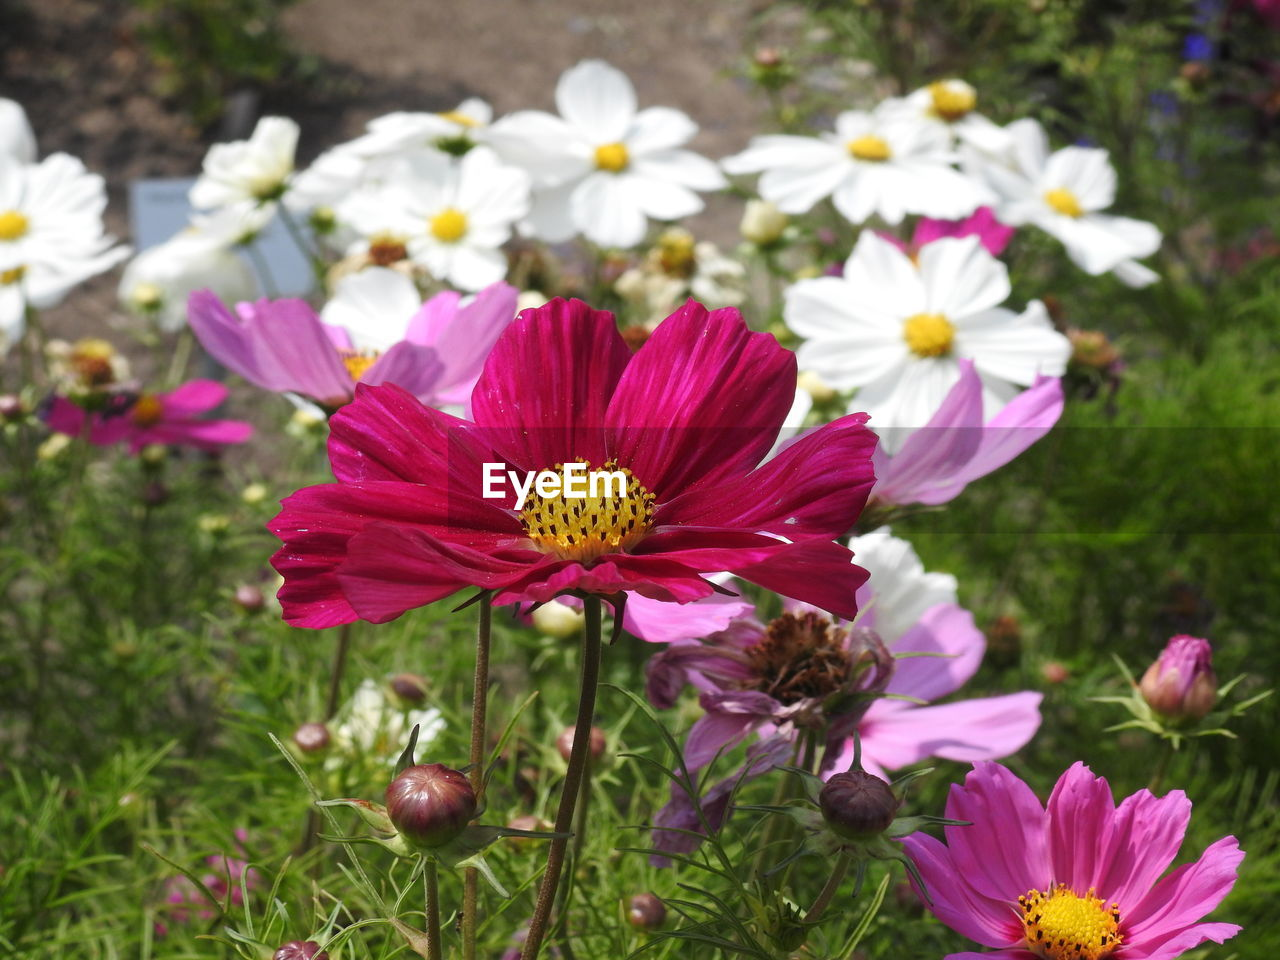 flowering plant, flower, freshness, fragility, vulnerability, petal, plant, beauty in nature, flower head, inflorescence, growth, close-up, pollen, focus on foreground, nature, day, pink color, no people, cosmos flower, park, outdoors, gazania